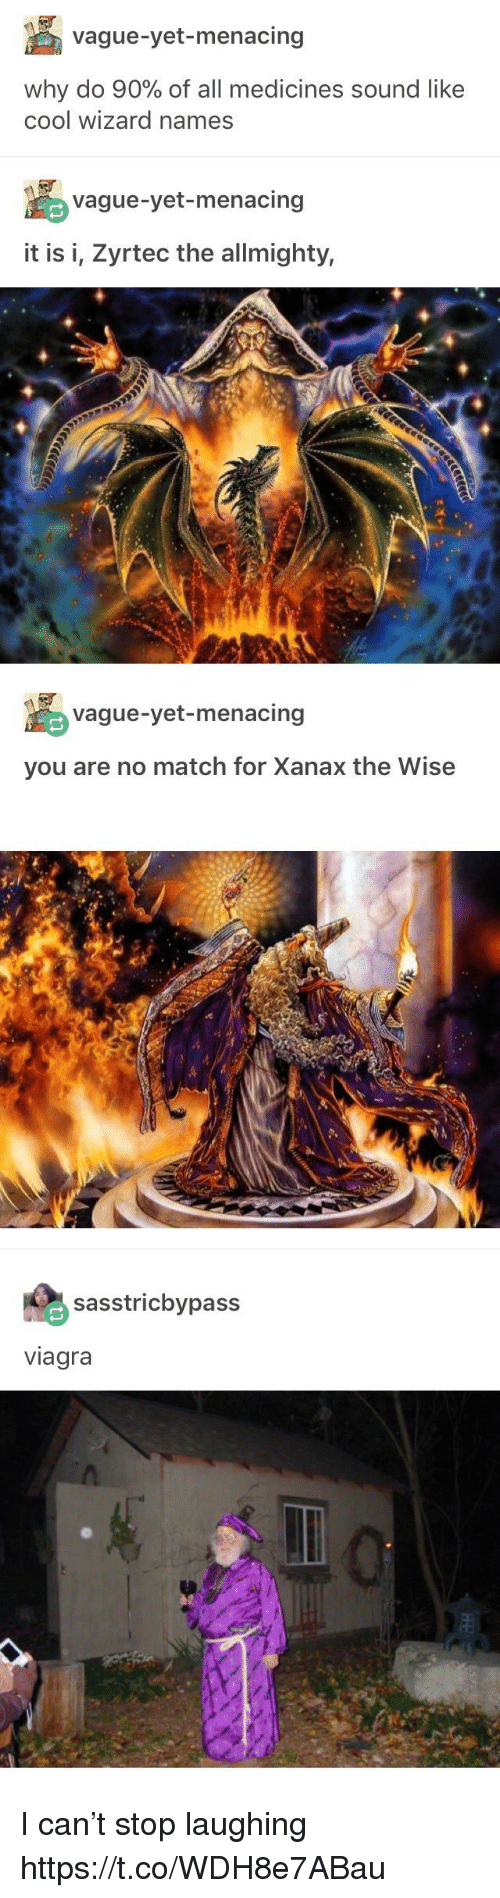 Xanax, Cool, and Match: vague-yet-menacing  Why do 90% of all medicines sound like  cool wizard names  vague-yet-menacing  it is i, Zyrtec the allmighty,   vague-yet-menacing  you are no match for Xanax the Wise   sasstricbypass  viagra I can't stop laughing https://t.co/WDH8e7ABau